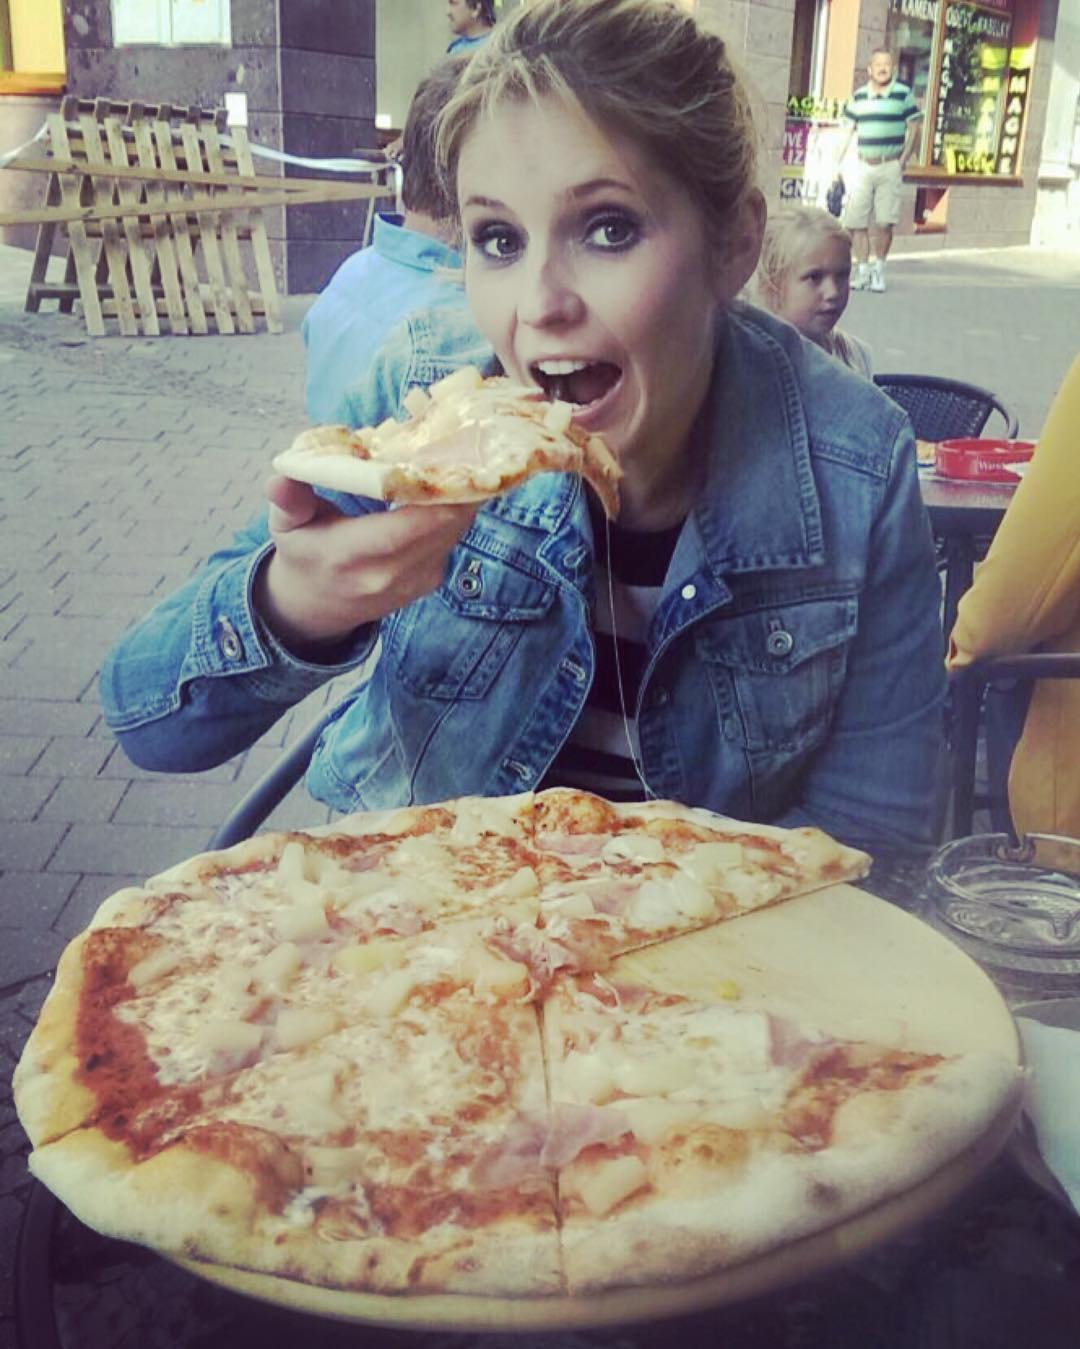 Celebrating tonight with a giant pizza